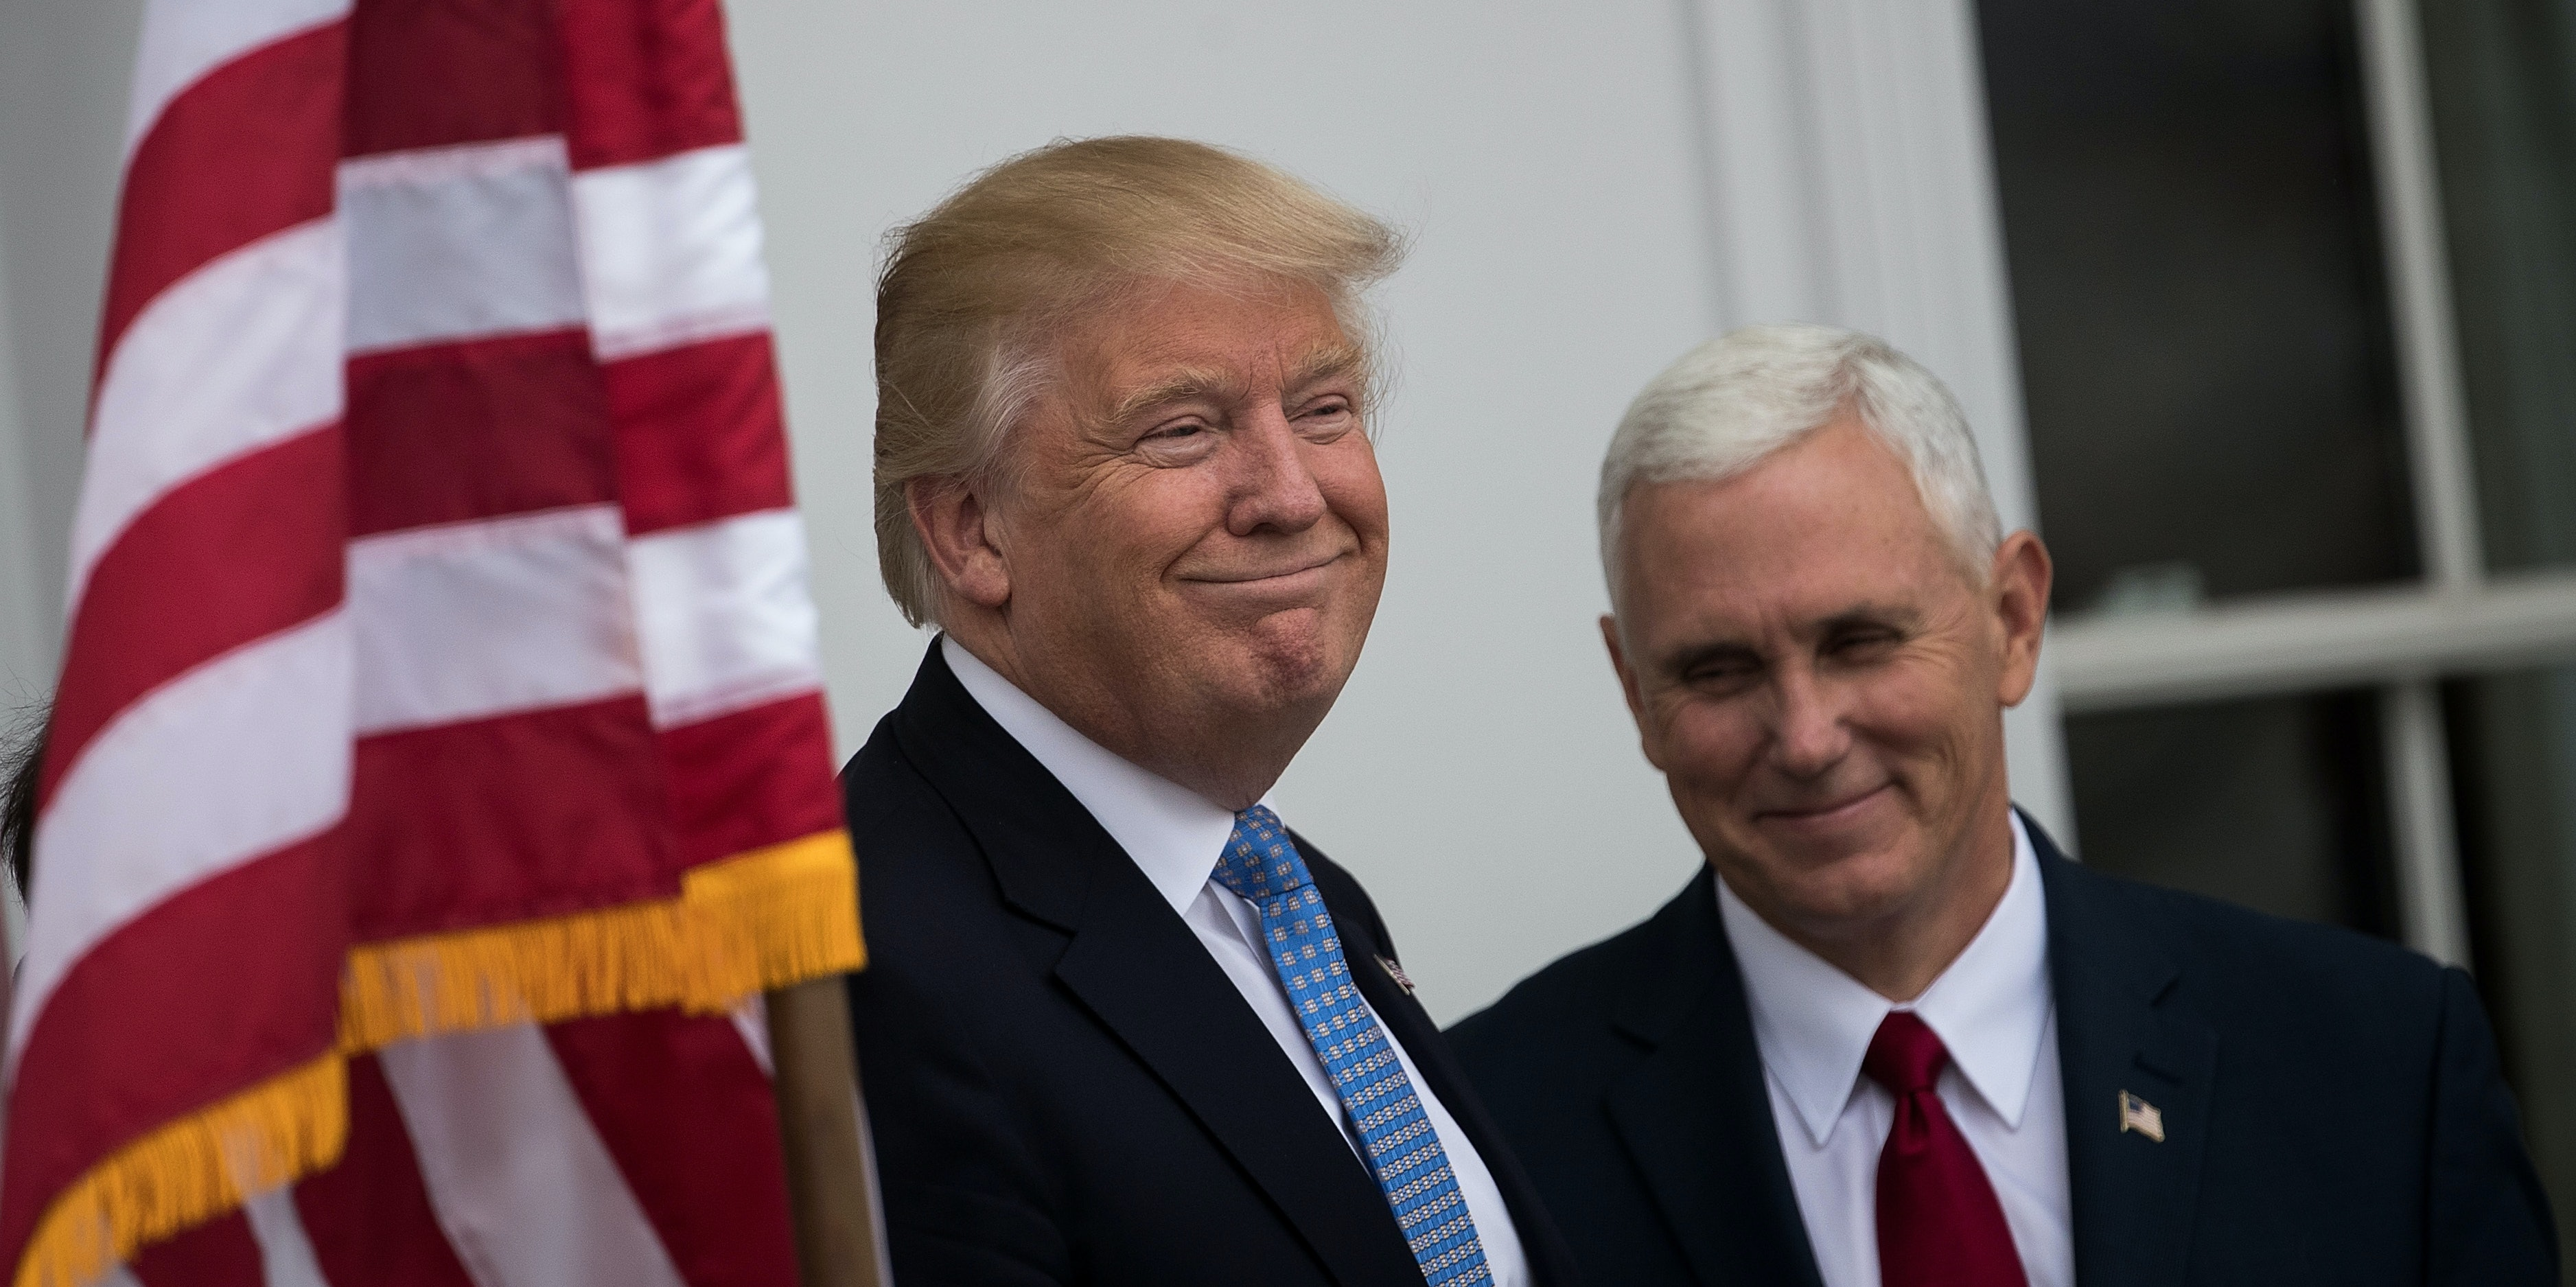 BEDMINSTER TOWNSHIP, NJ - NOVEMBER 20: (L to R) President-elect Donald Trump and vice president-elect Mike Pence listen to a question from the press regarding the musical 'Hamilton' before their meeting with investor Wilbur Ross at Trump International Golf Club, November 20, 2016 in Bedminster Township, New Jersey. Pence was booed when he attended the Broadway musical and a cast member read him a message after the show. Trump and his transition team are in the process of filling cabinet and other high level positions for the new administration.  (Photo by Drew Angerer/Getty Images)